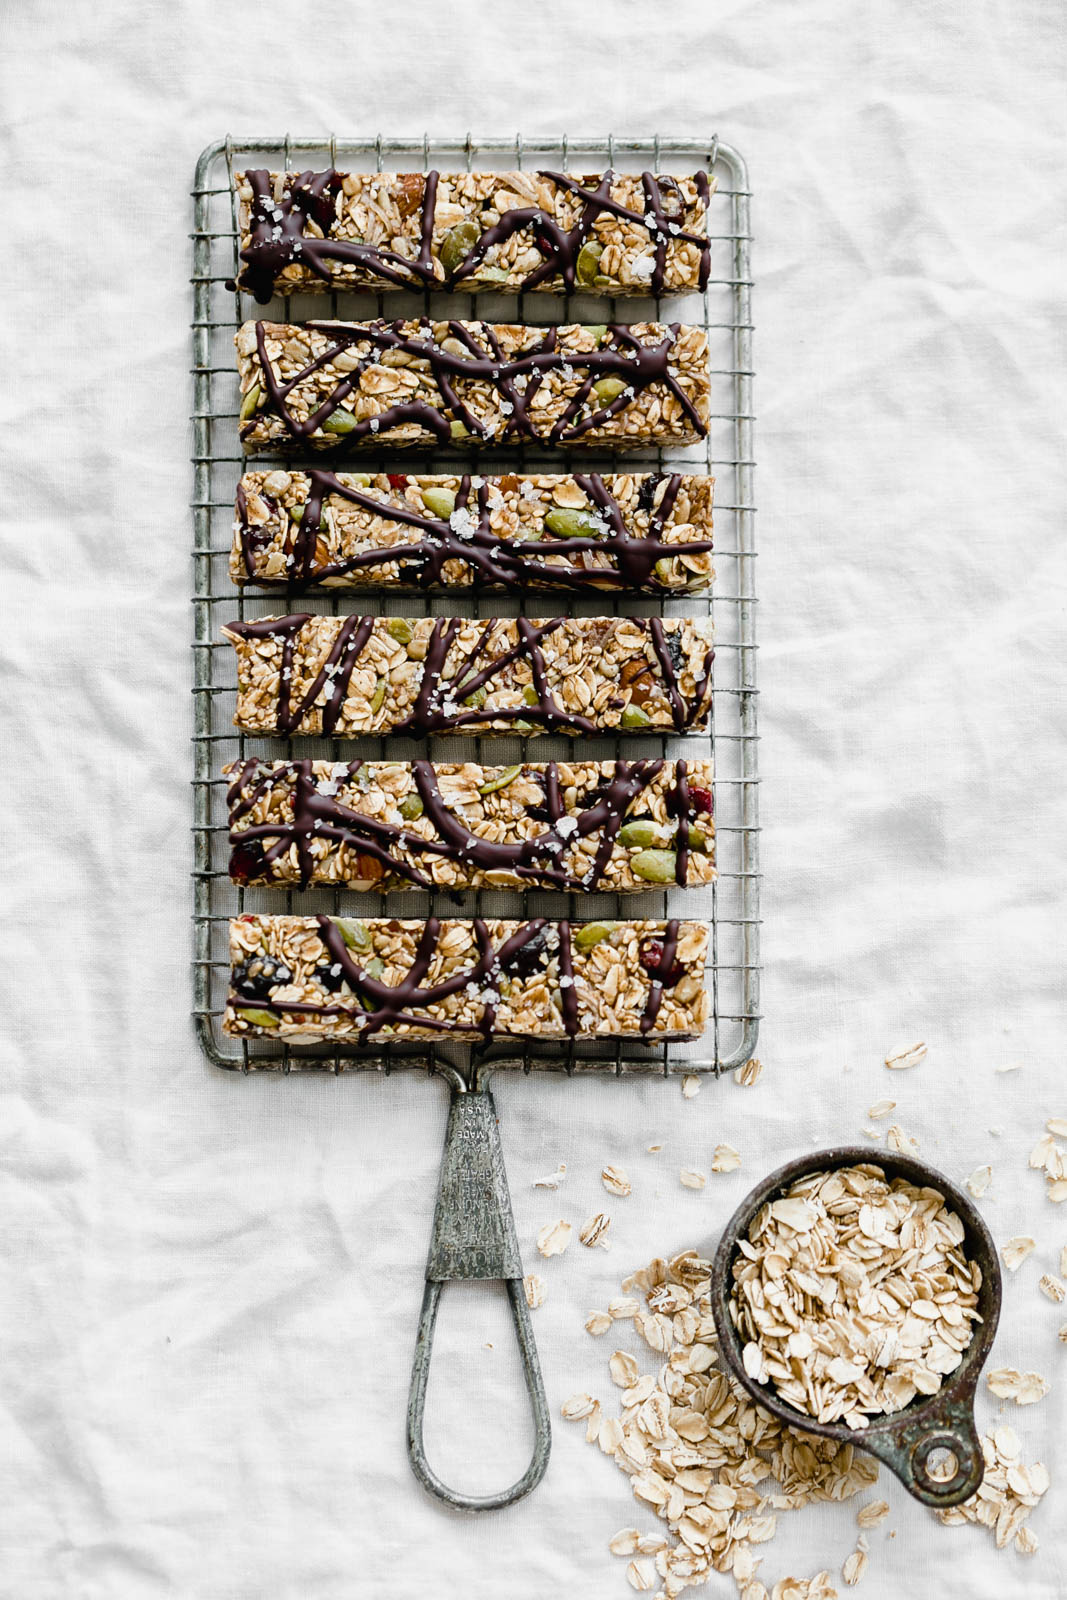 Raw Seedy Granola Bars made with oats, sunflower seeds, pepitas, sesame seeds, almonds, apricots, and honey, topped with a drizzle of dark chocolate